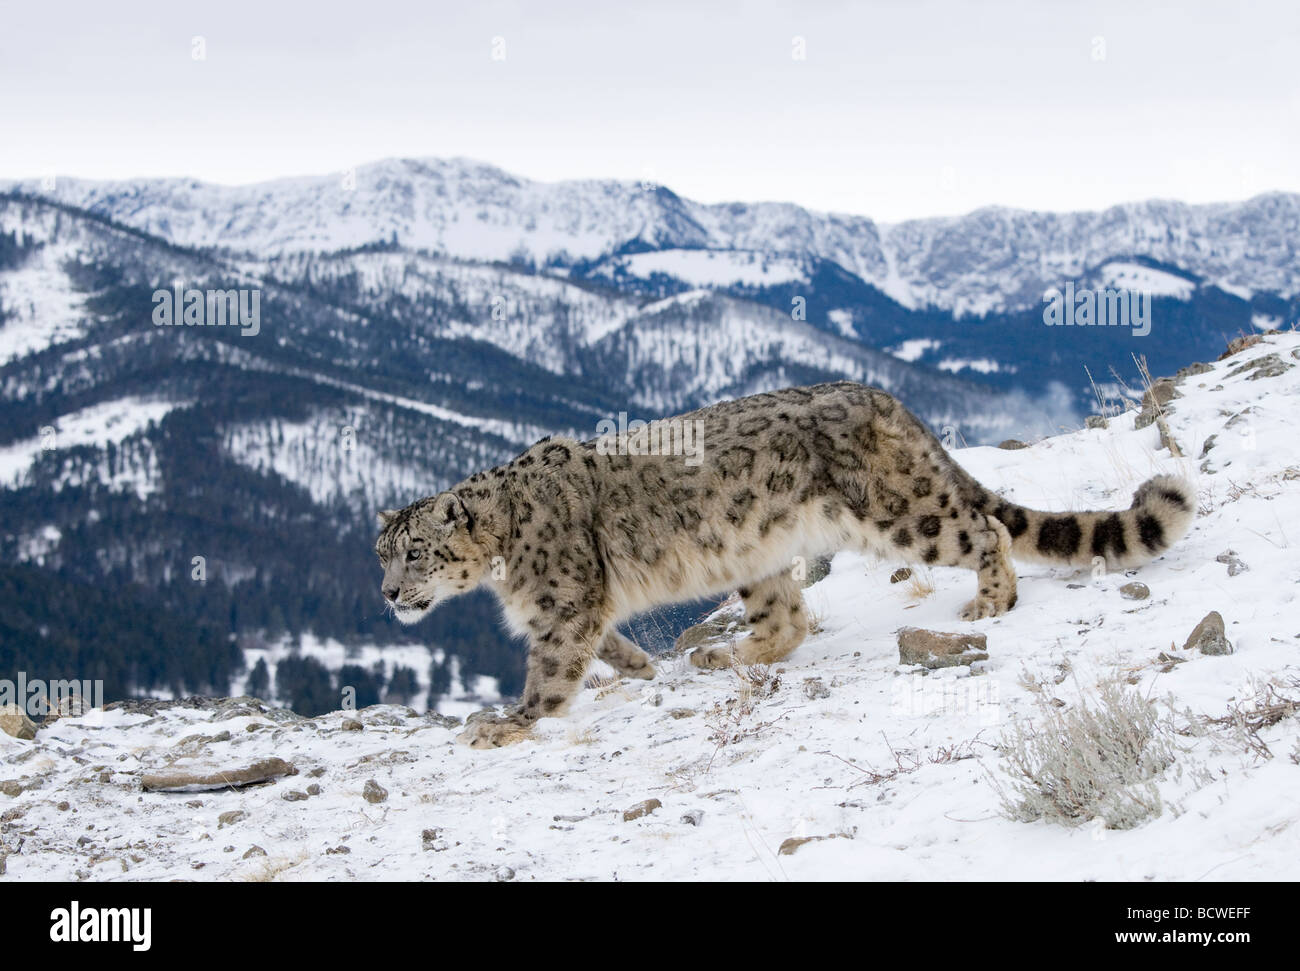 Snow leopard (Panthera uncia) walking in snow Stock Photo